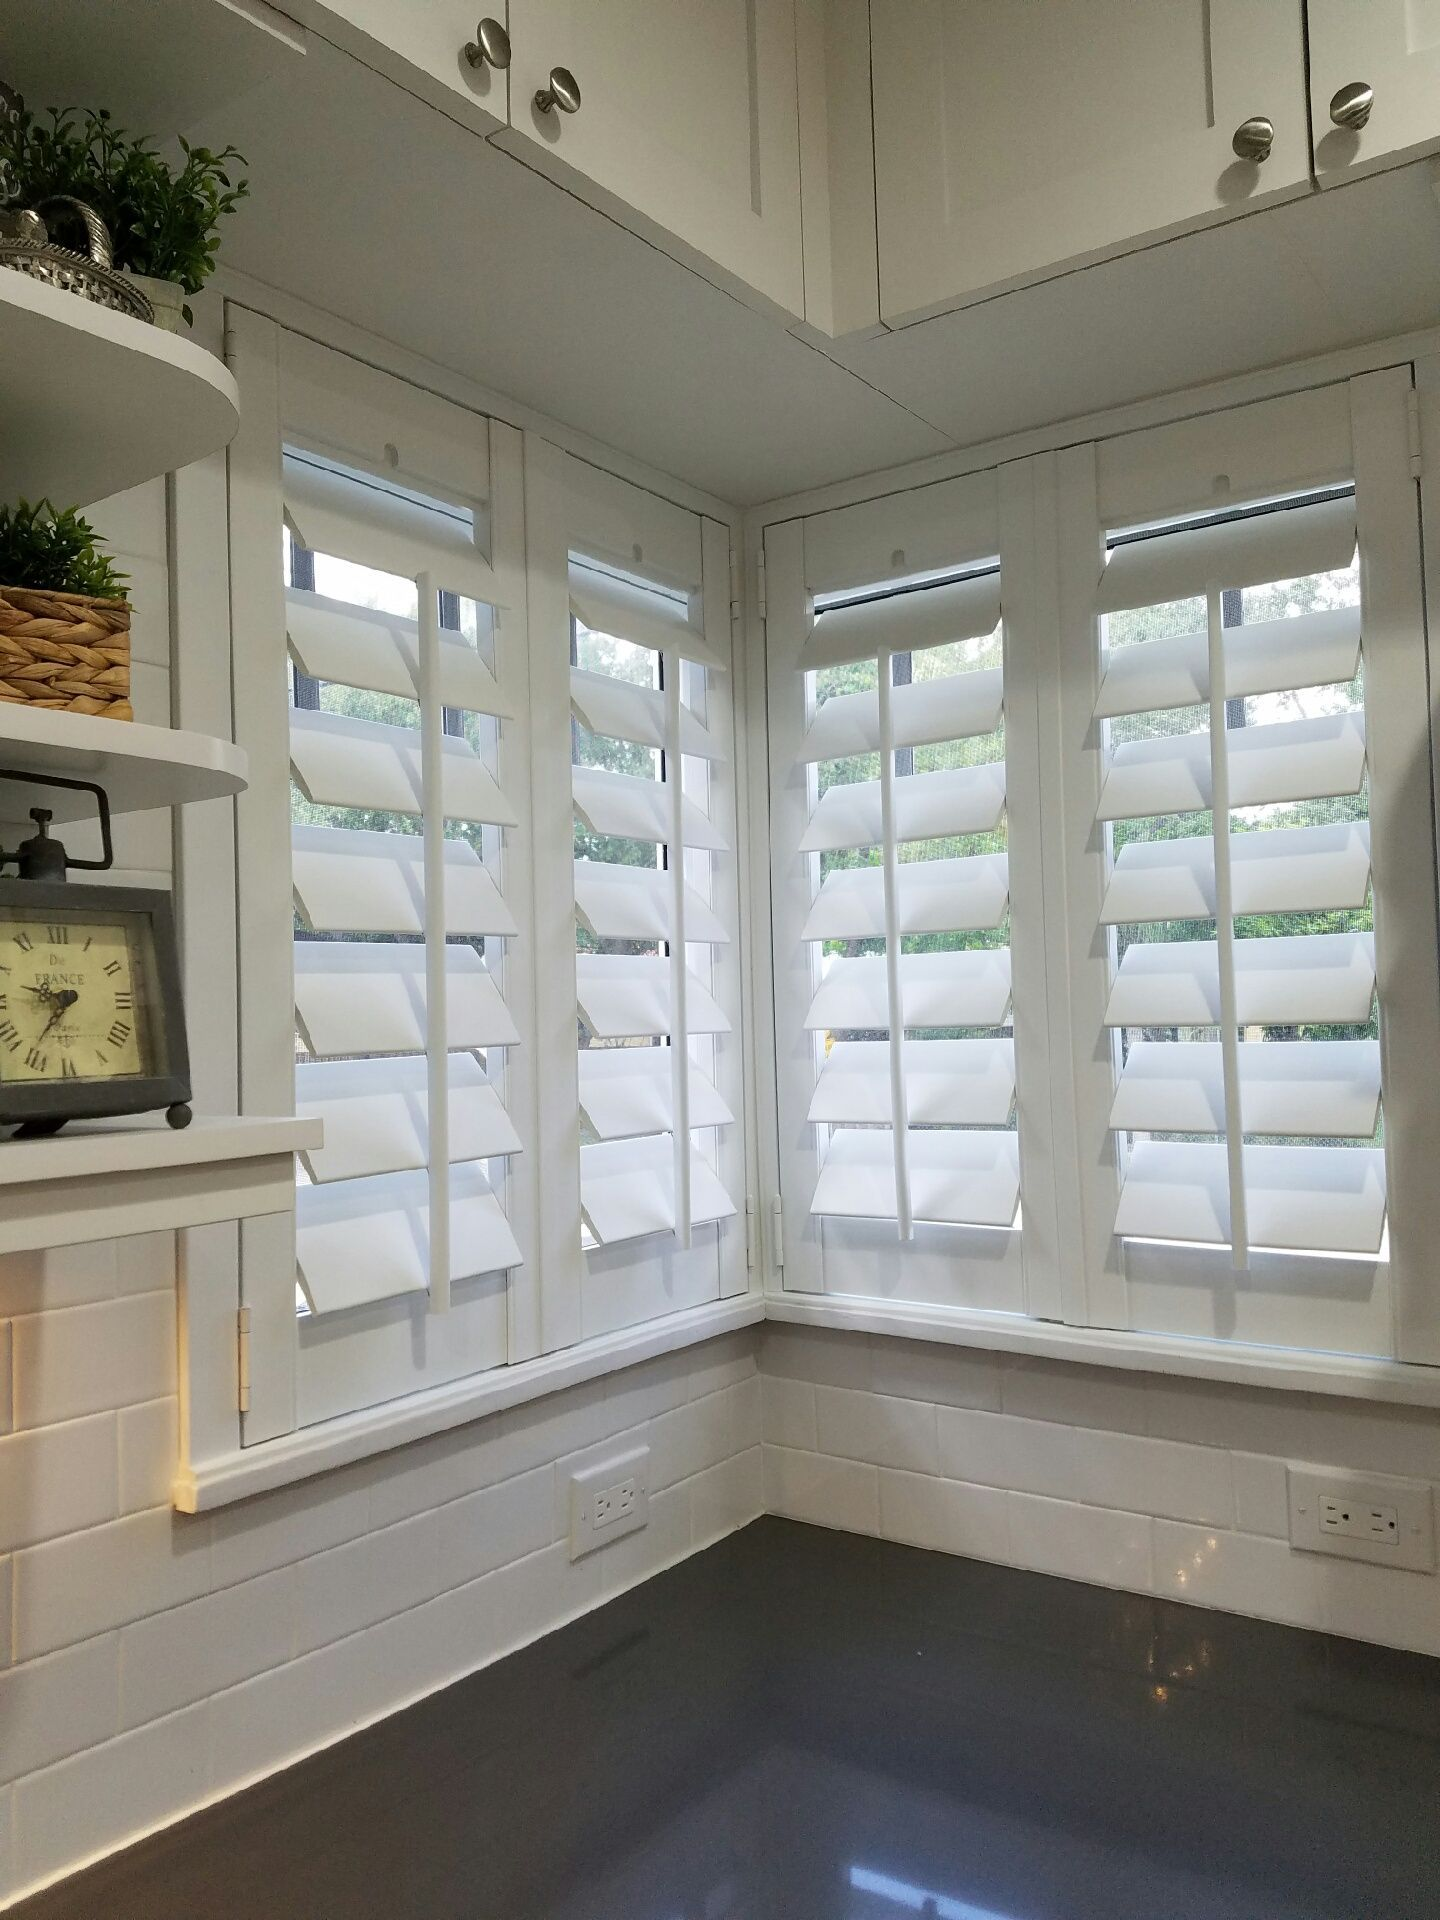 Windows with blinds inside the glass   Prodigious Tips Roller Blinds Kitchen dark blinds for windows